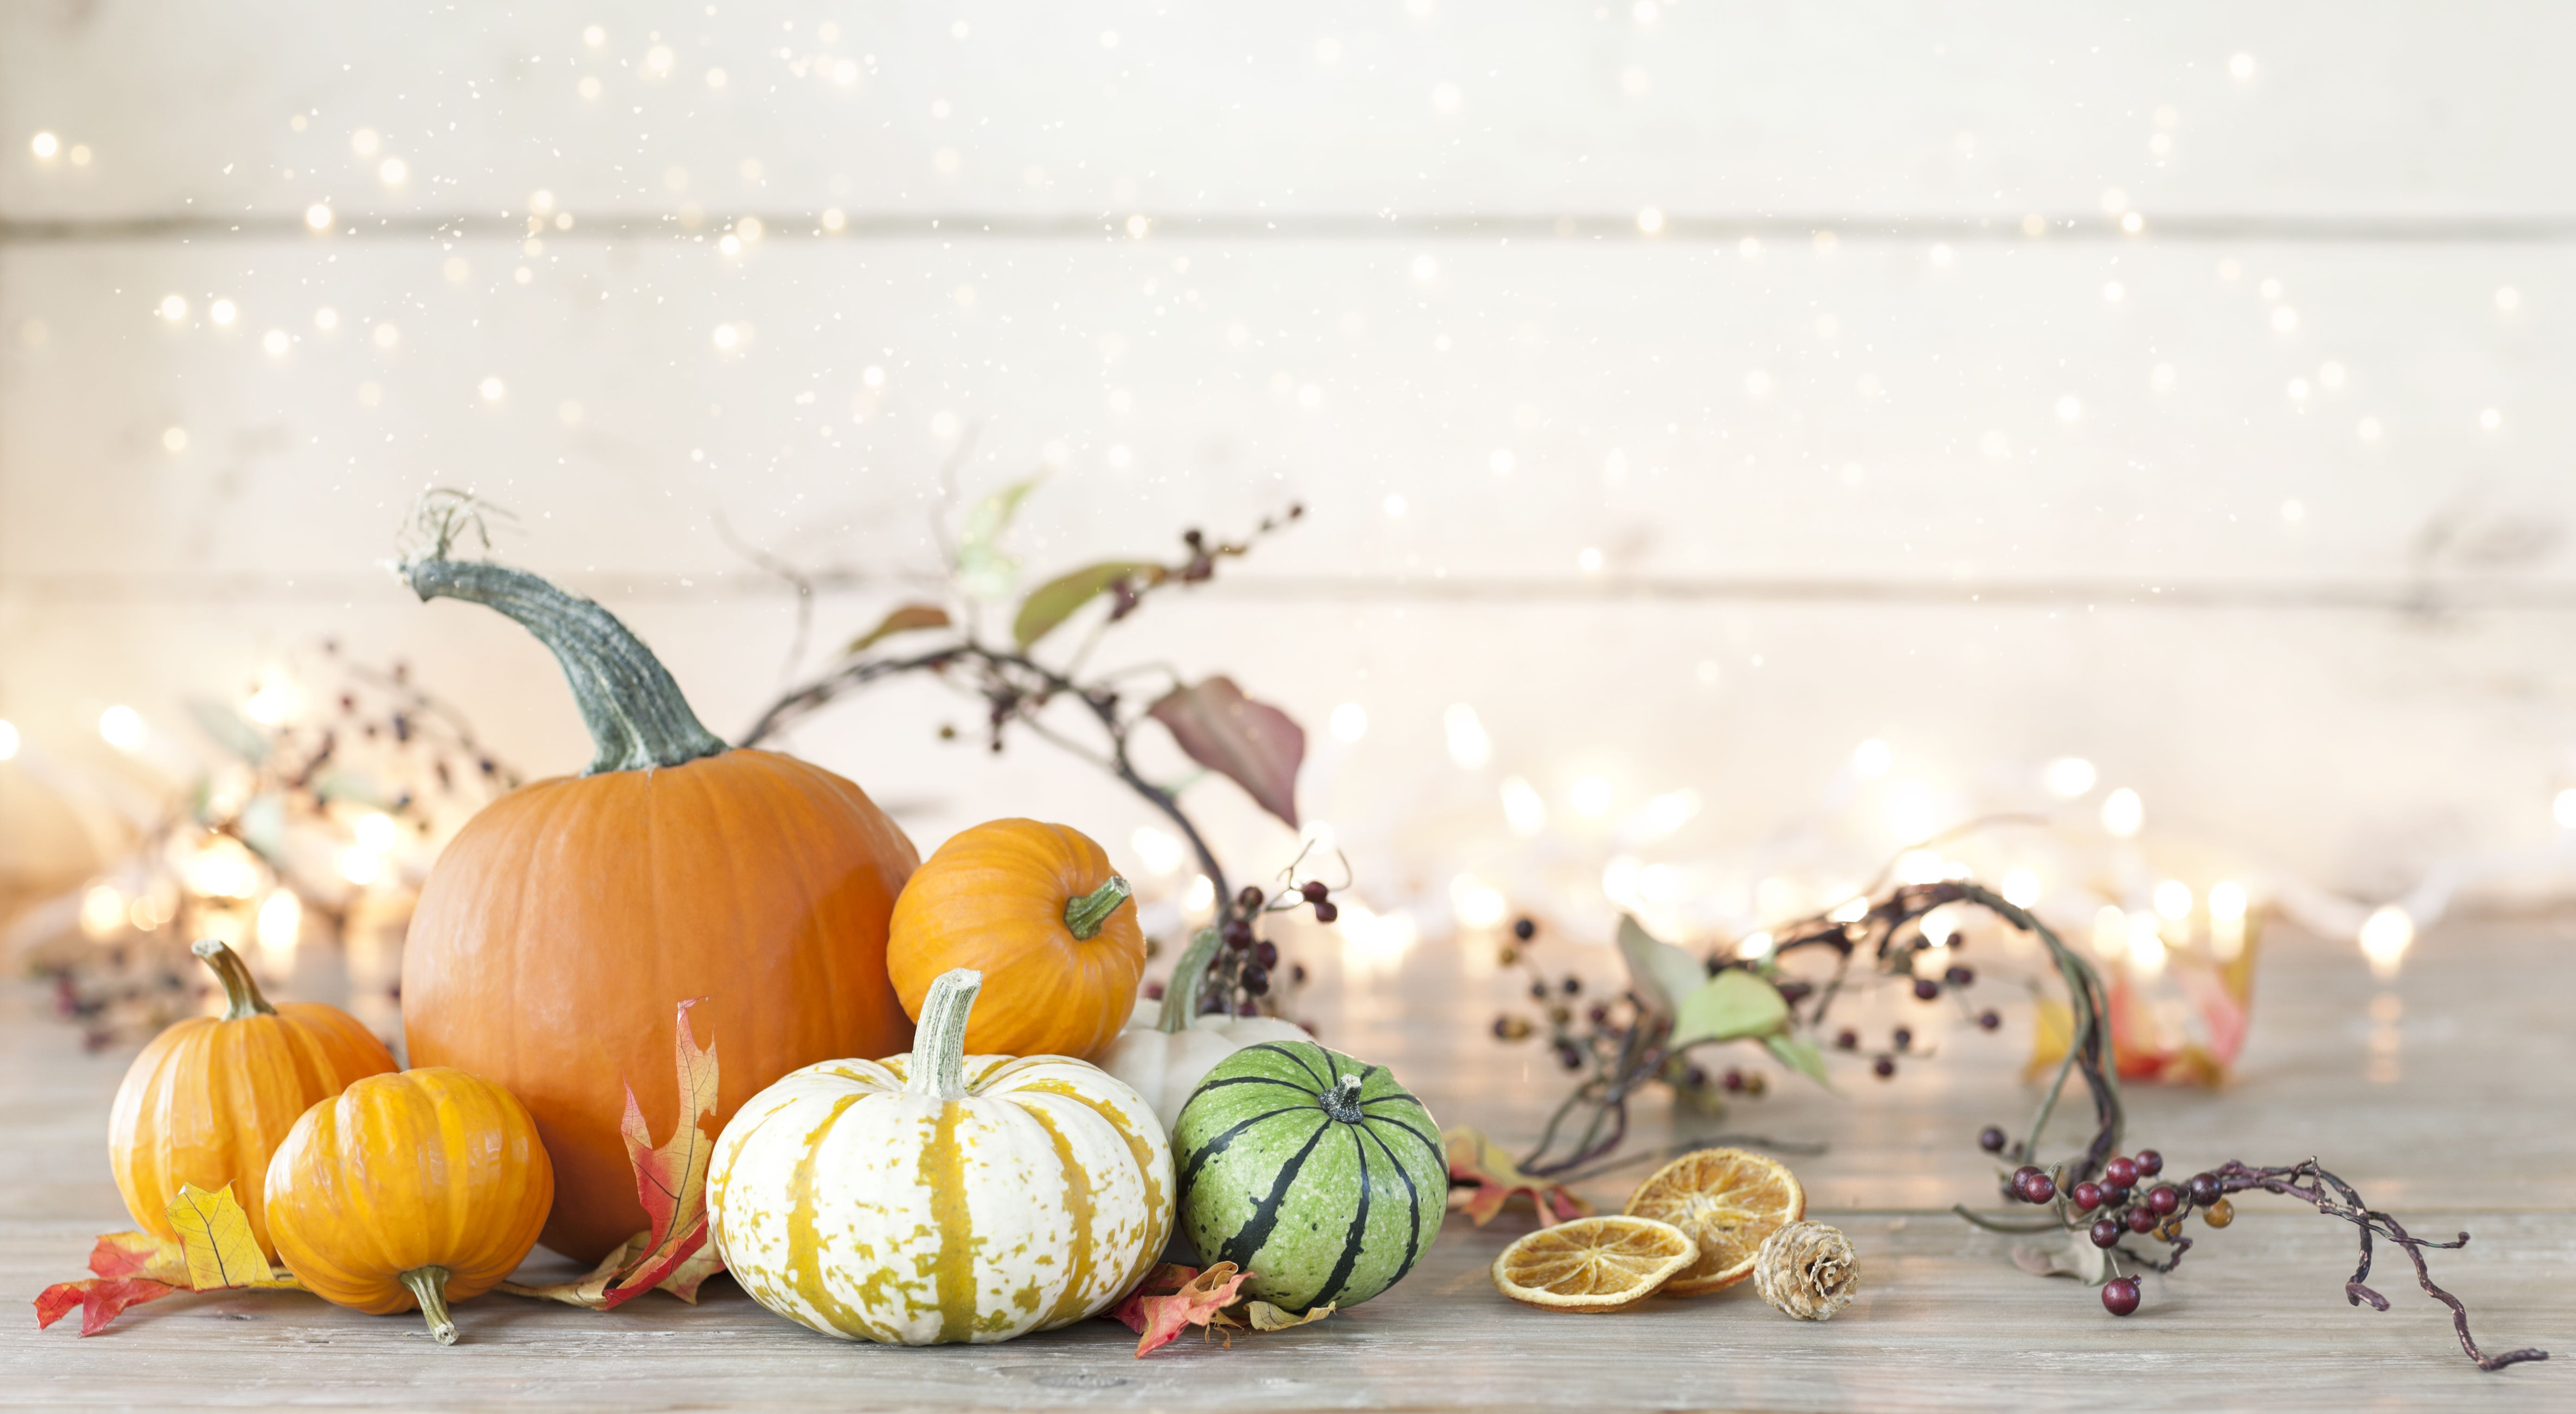 Thanksgiving pumpkins. Credit: Getty Images